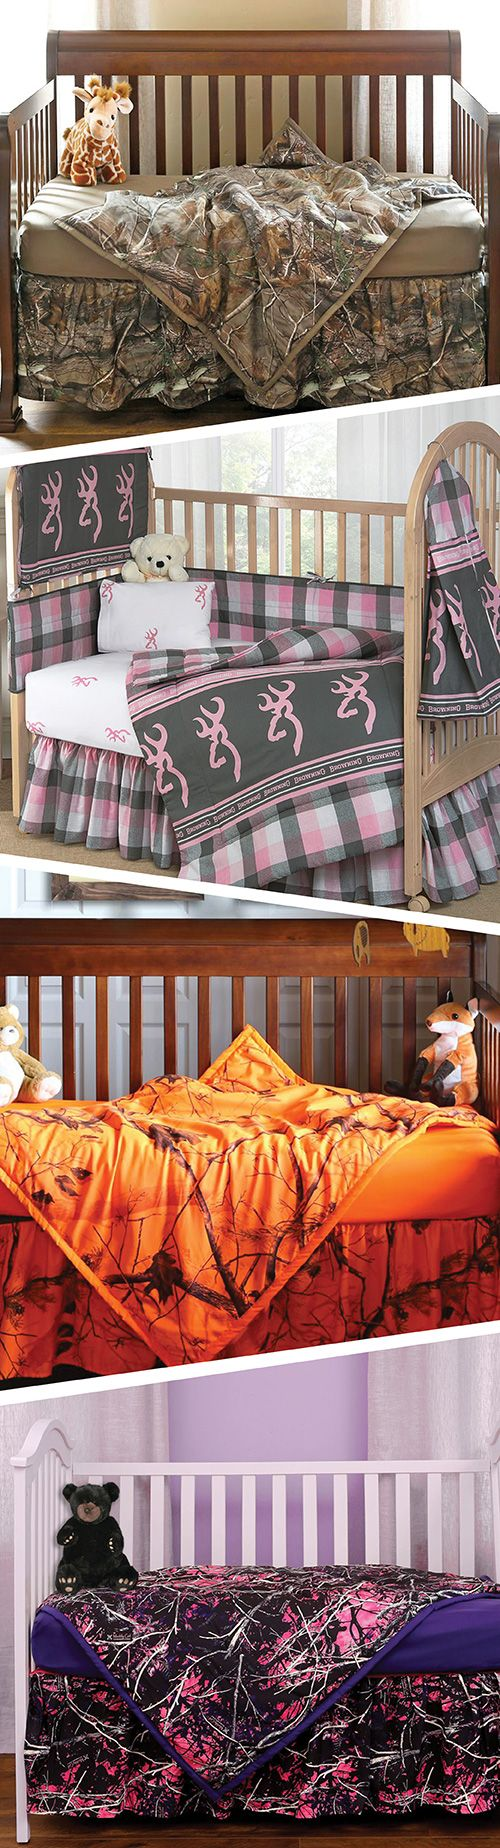 Orange camo bedding - Camouflage Bedding Sheets And Comforters